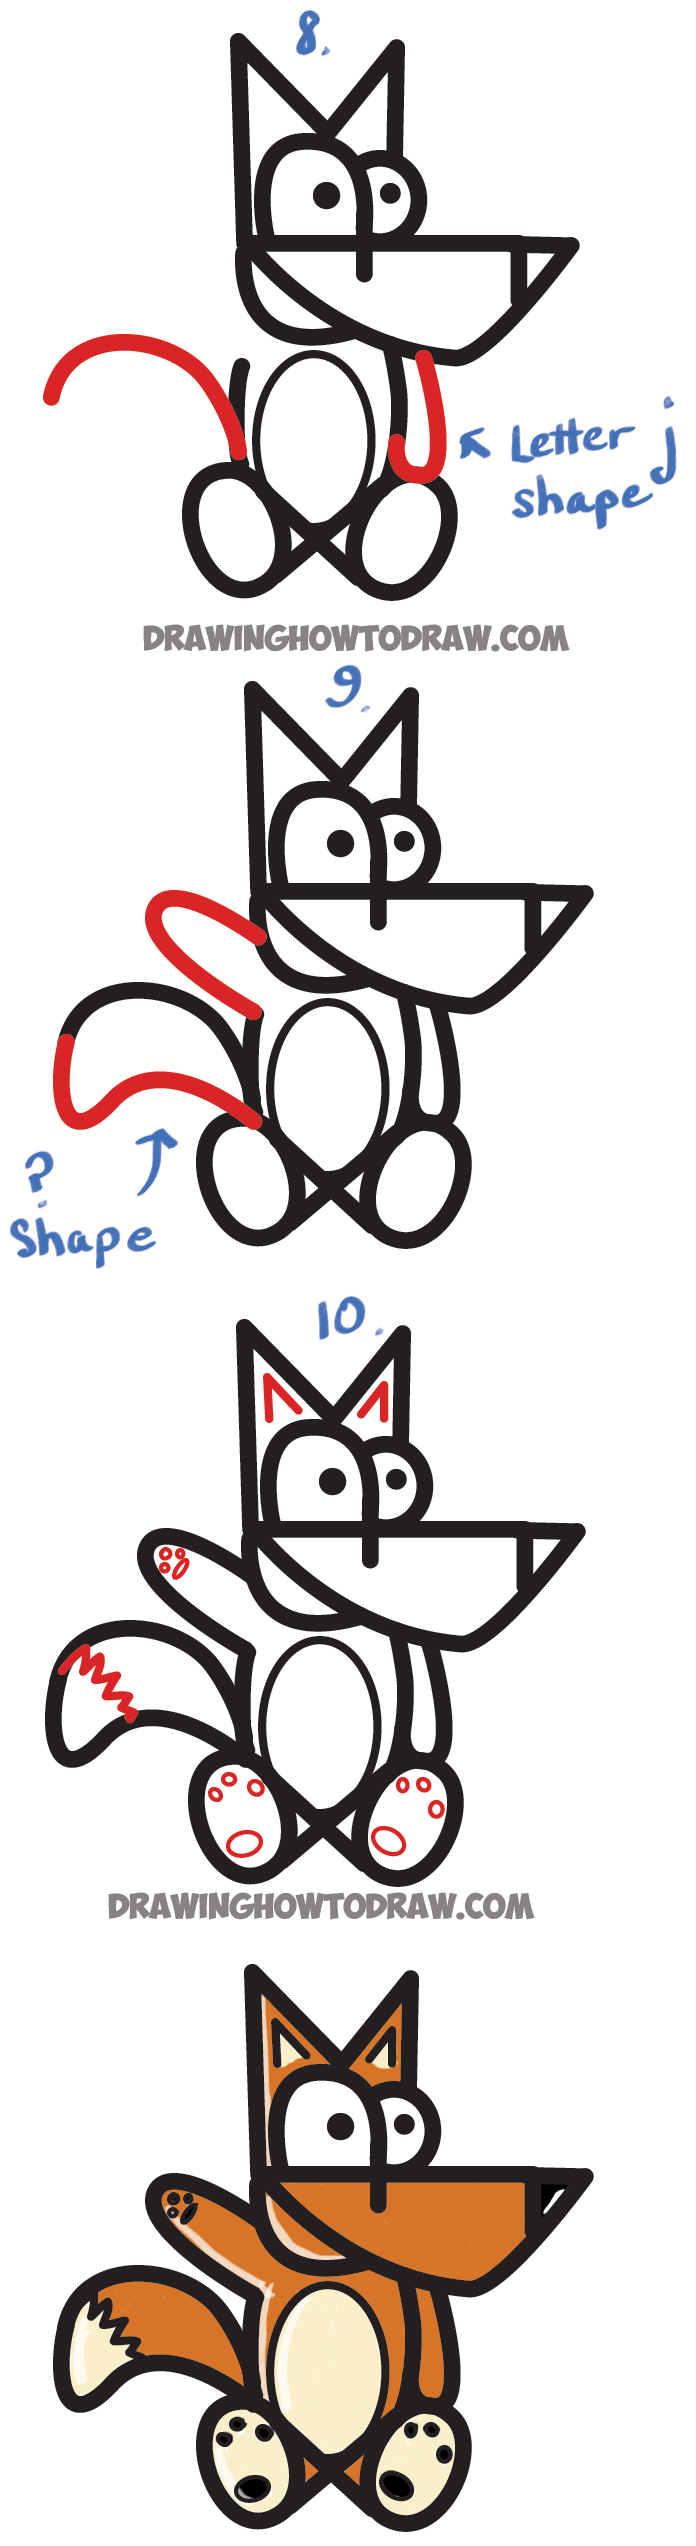 learn how to draw a cartoon fox from the word fox - word toons